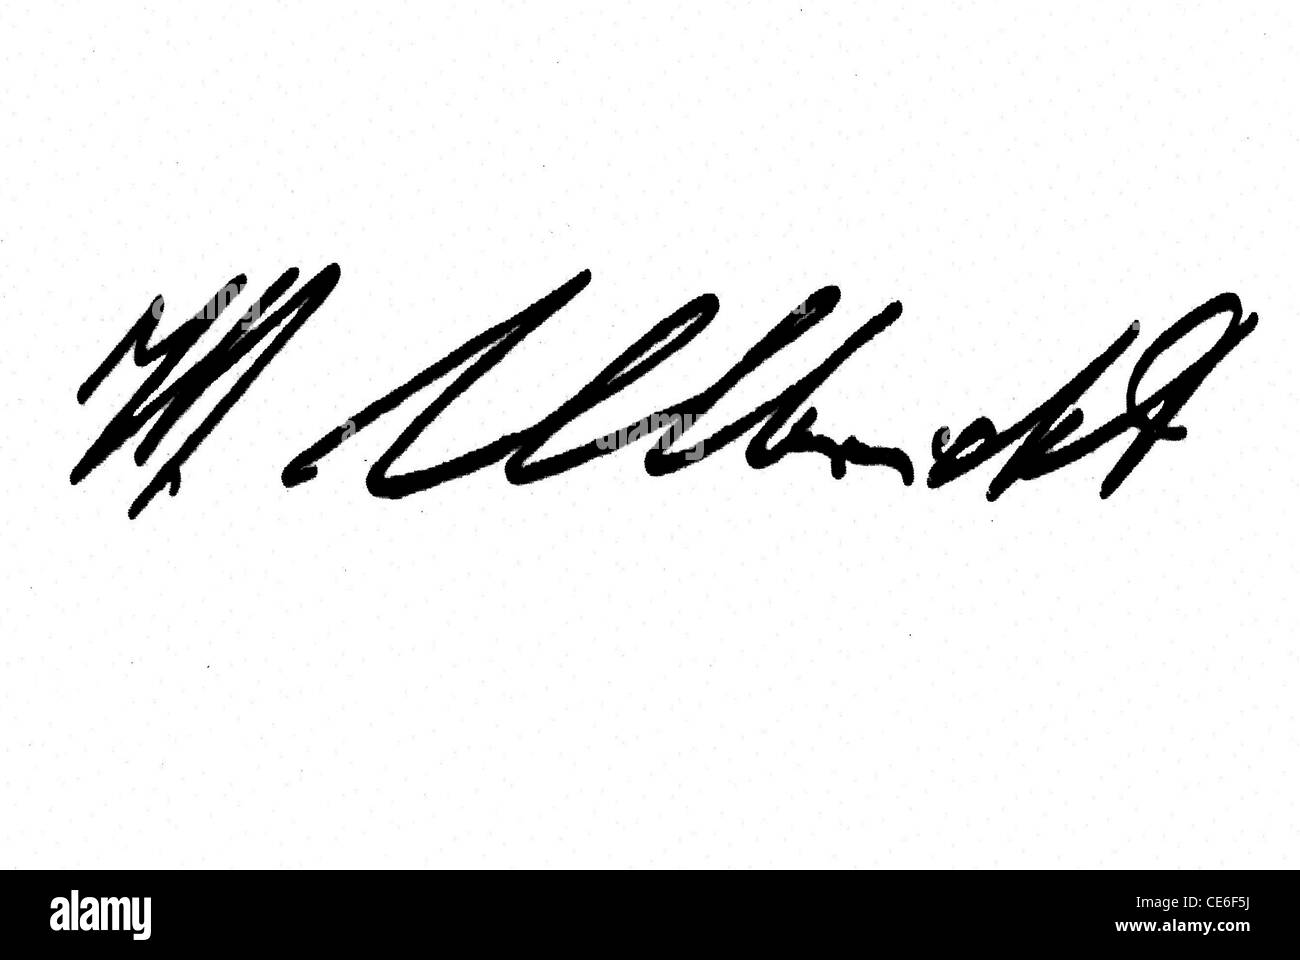 Signature of Walter Ulbricht: Party leader of the SED 1953 to 1971 and Chairman of the Council of state of the GDR - Stock Image